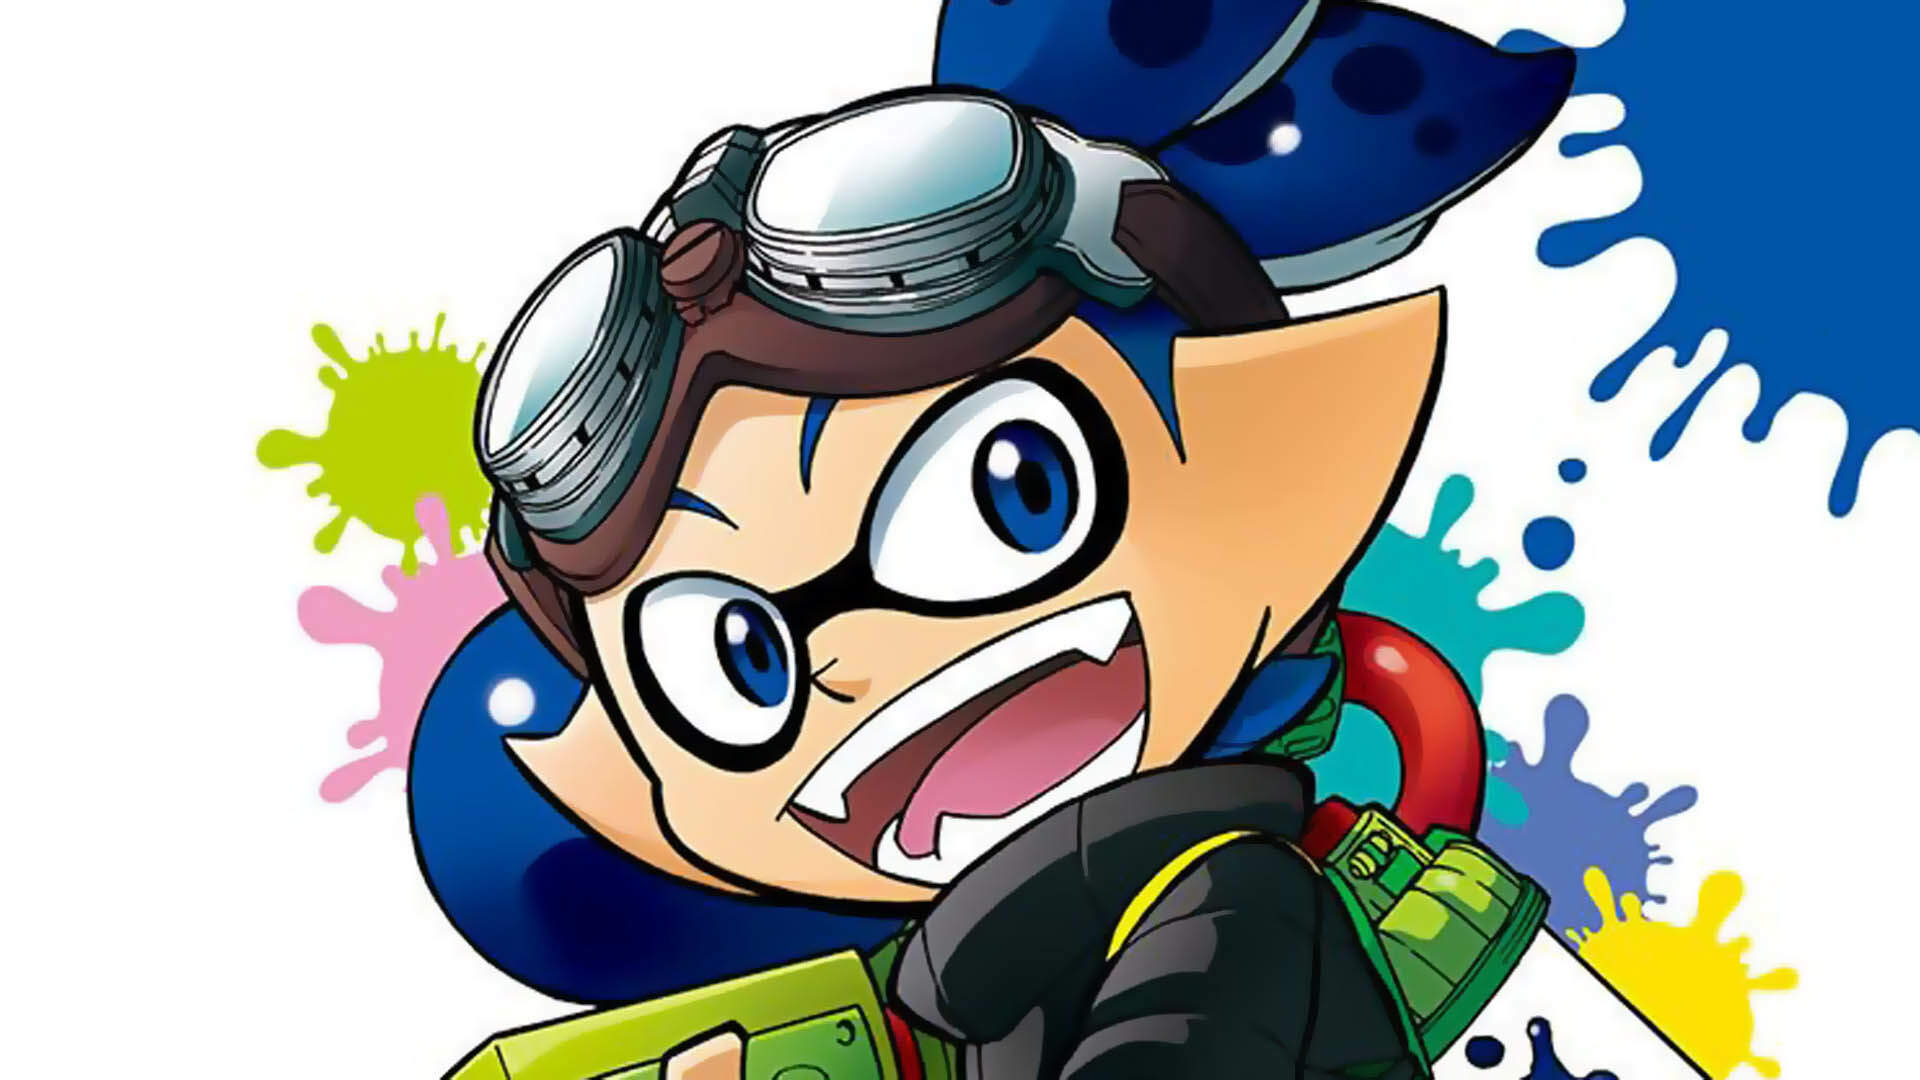 Splatoon is Getting an Anime Just in Time for Splatoon 2